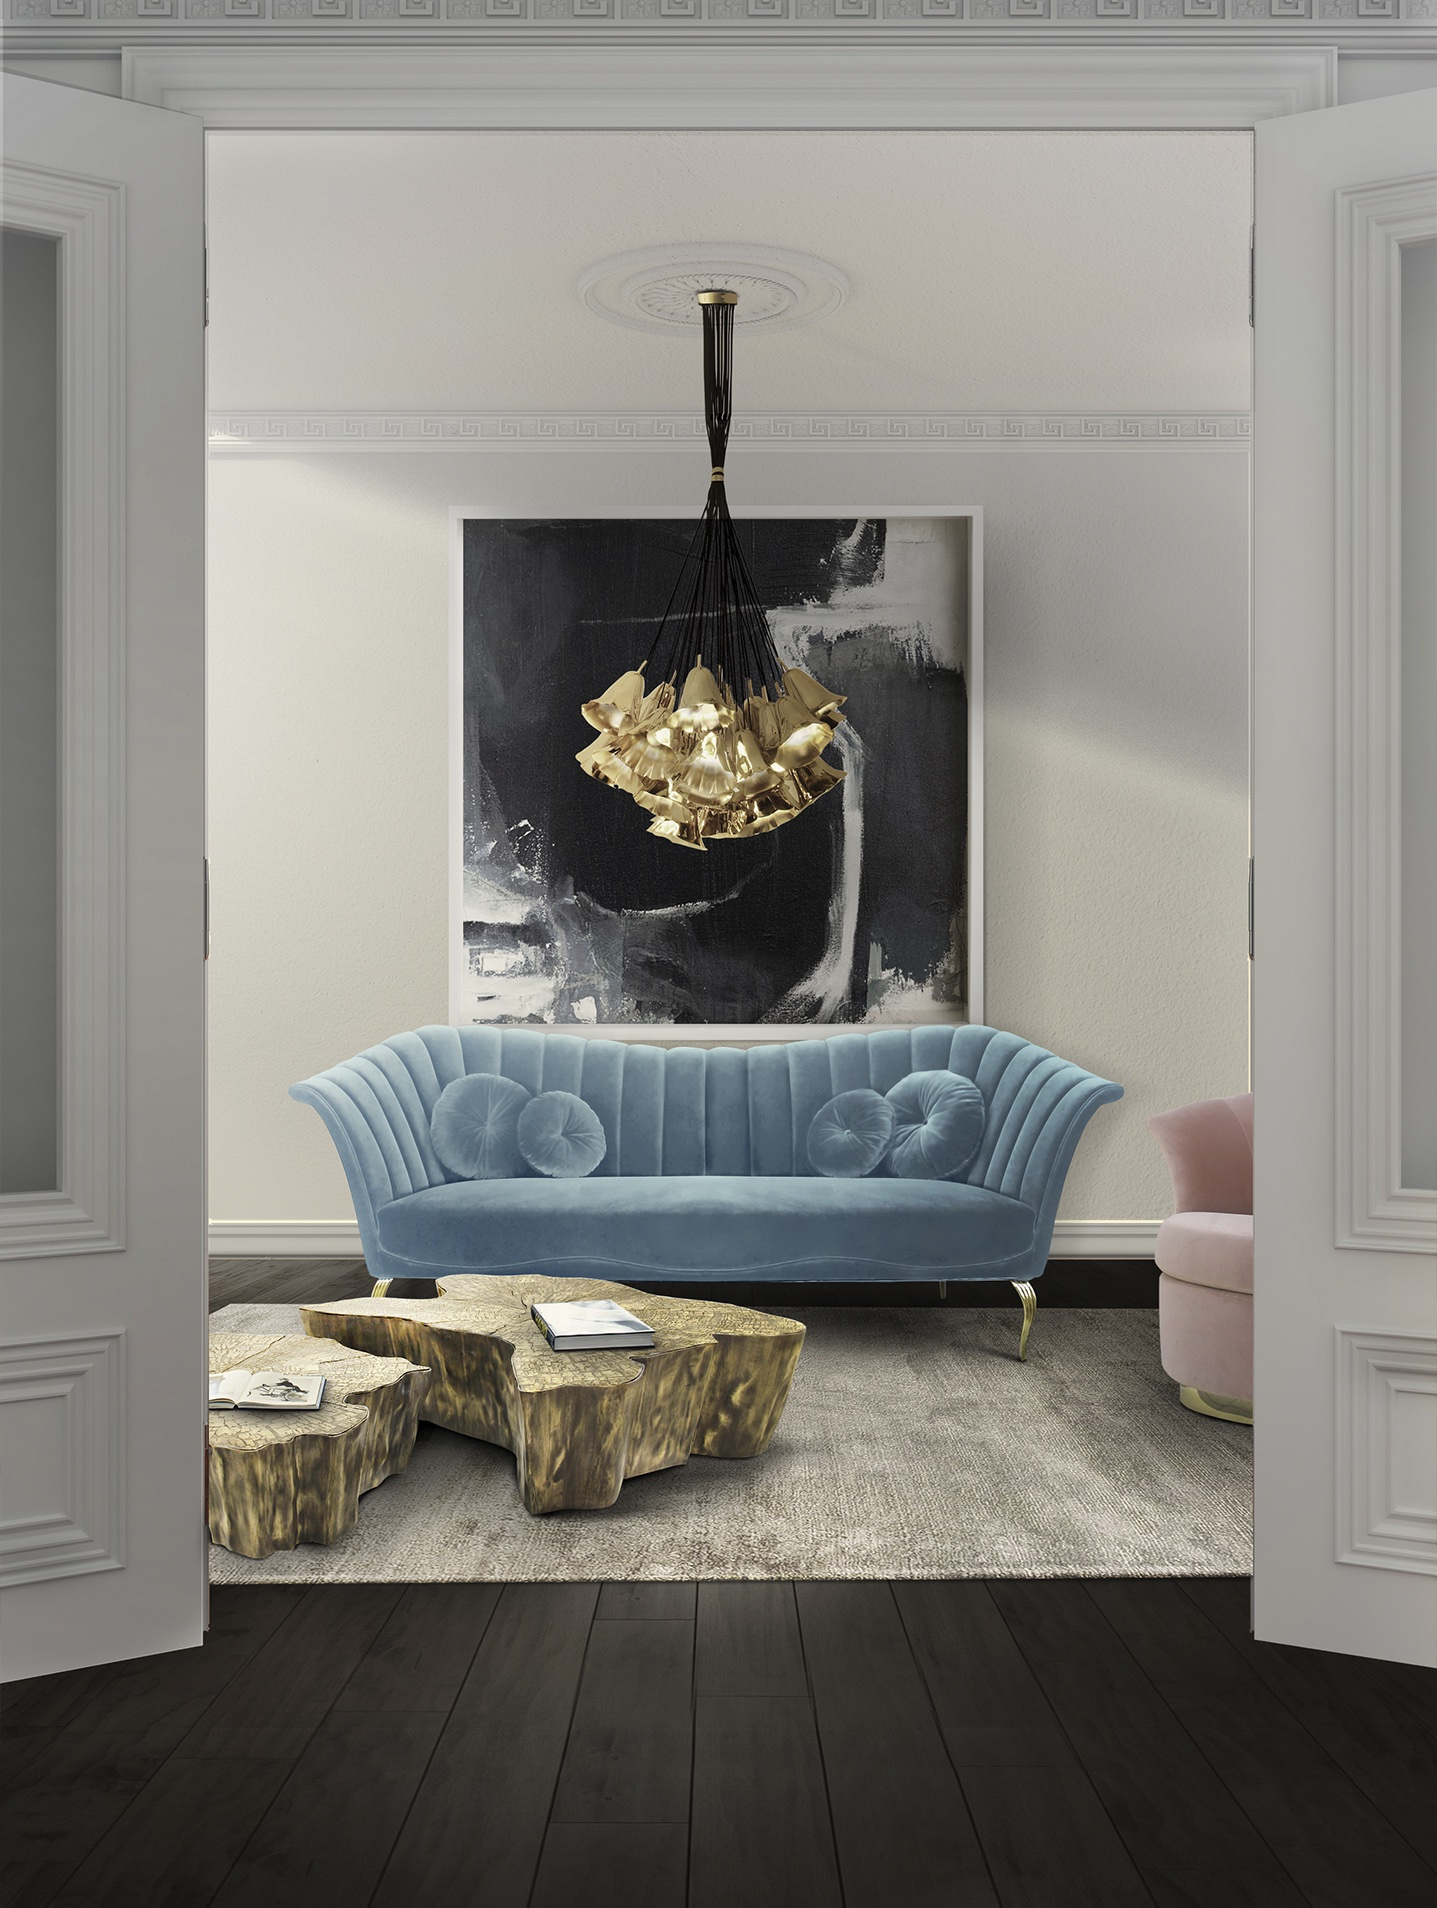 The Best Luxury Living Room Sofas to Stylish your Home Decor luxury living room sofas The Best Luxury Living Room Sofas to Stylish your Home Decor caprichosa sofa besame chair gia chandelier koket projects